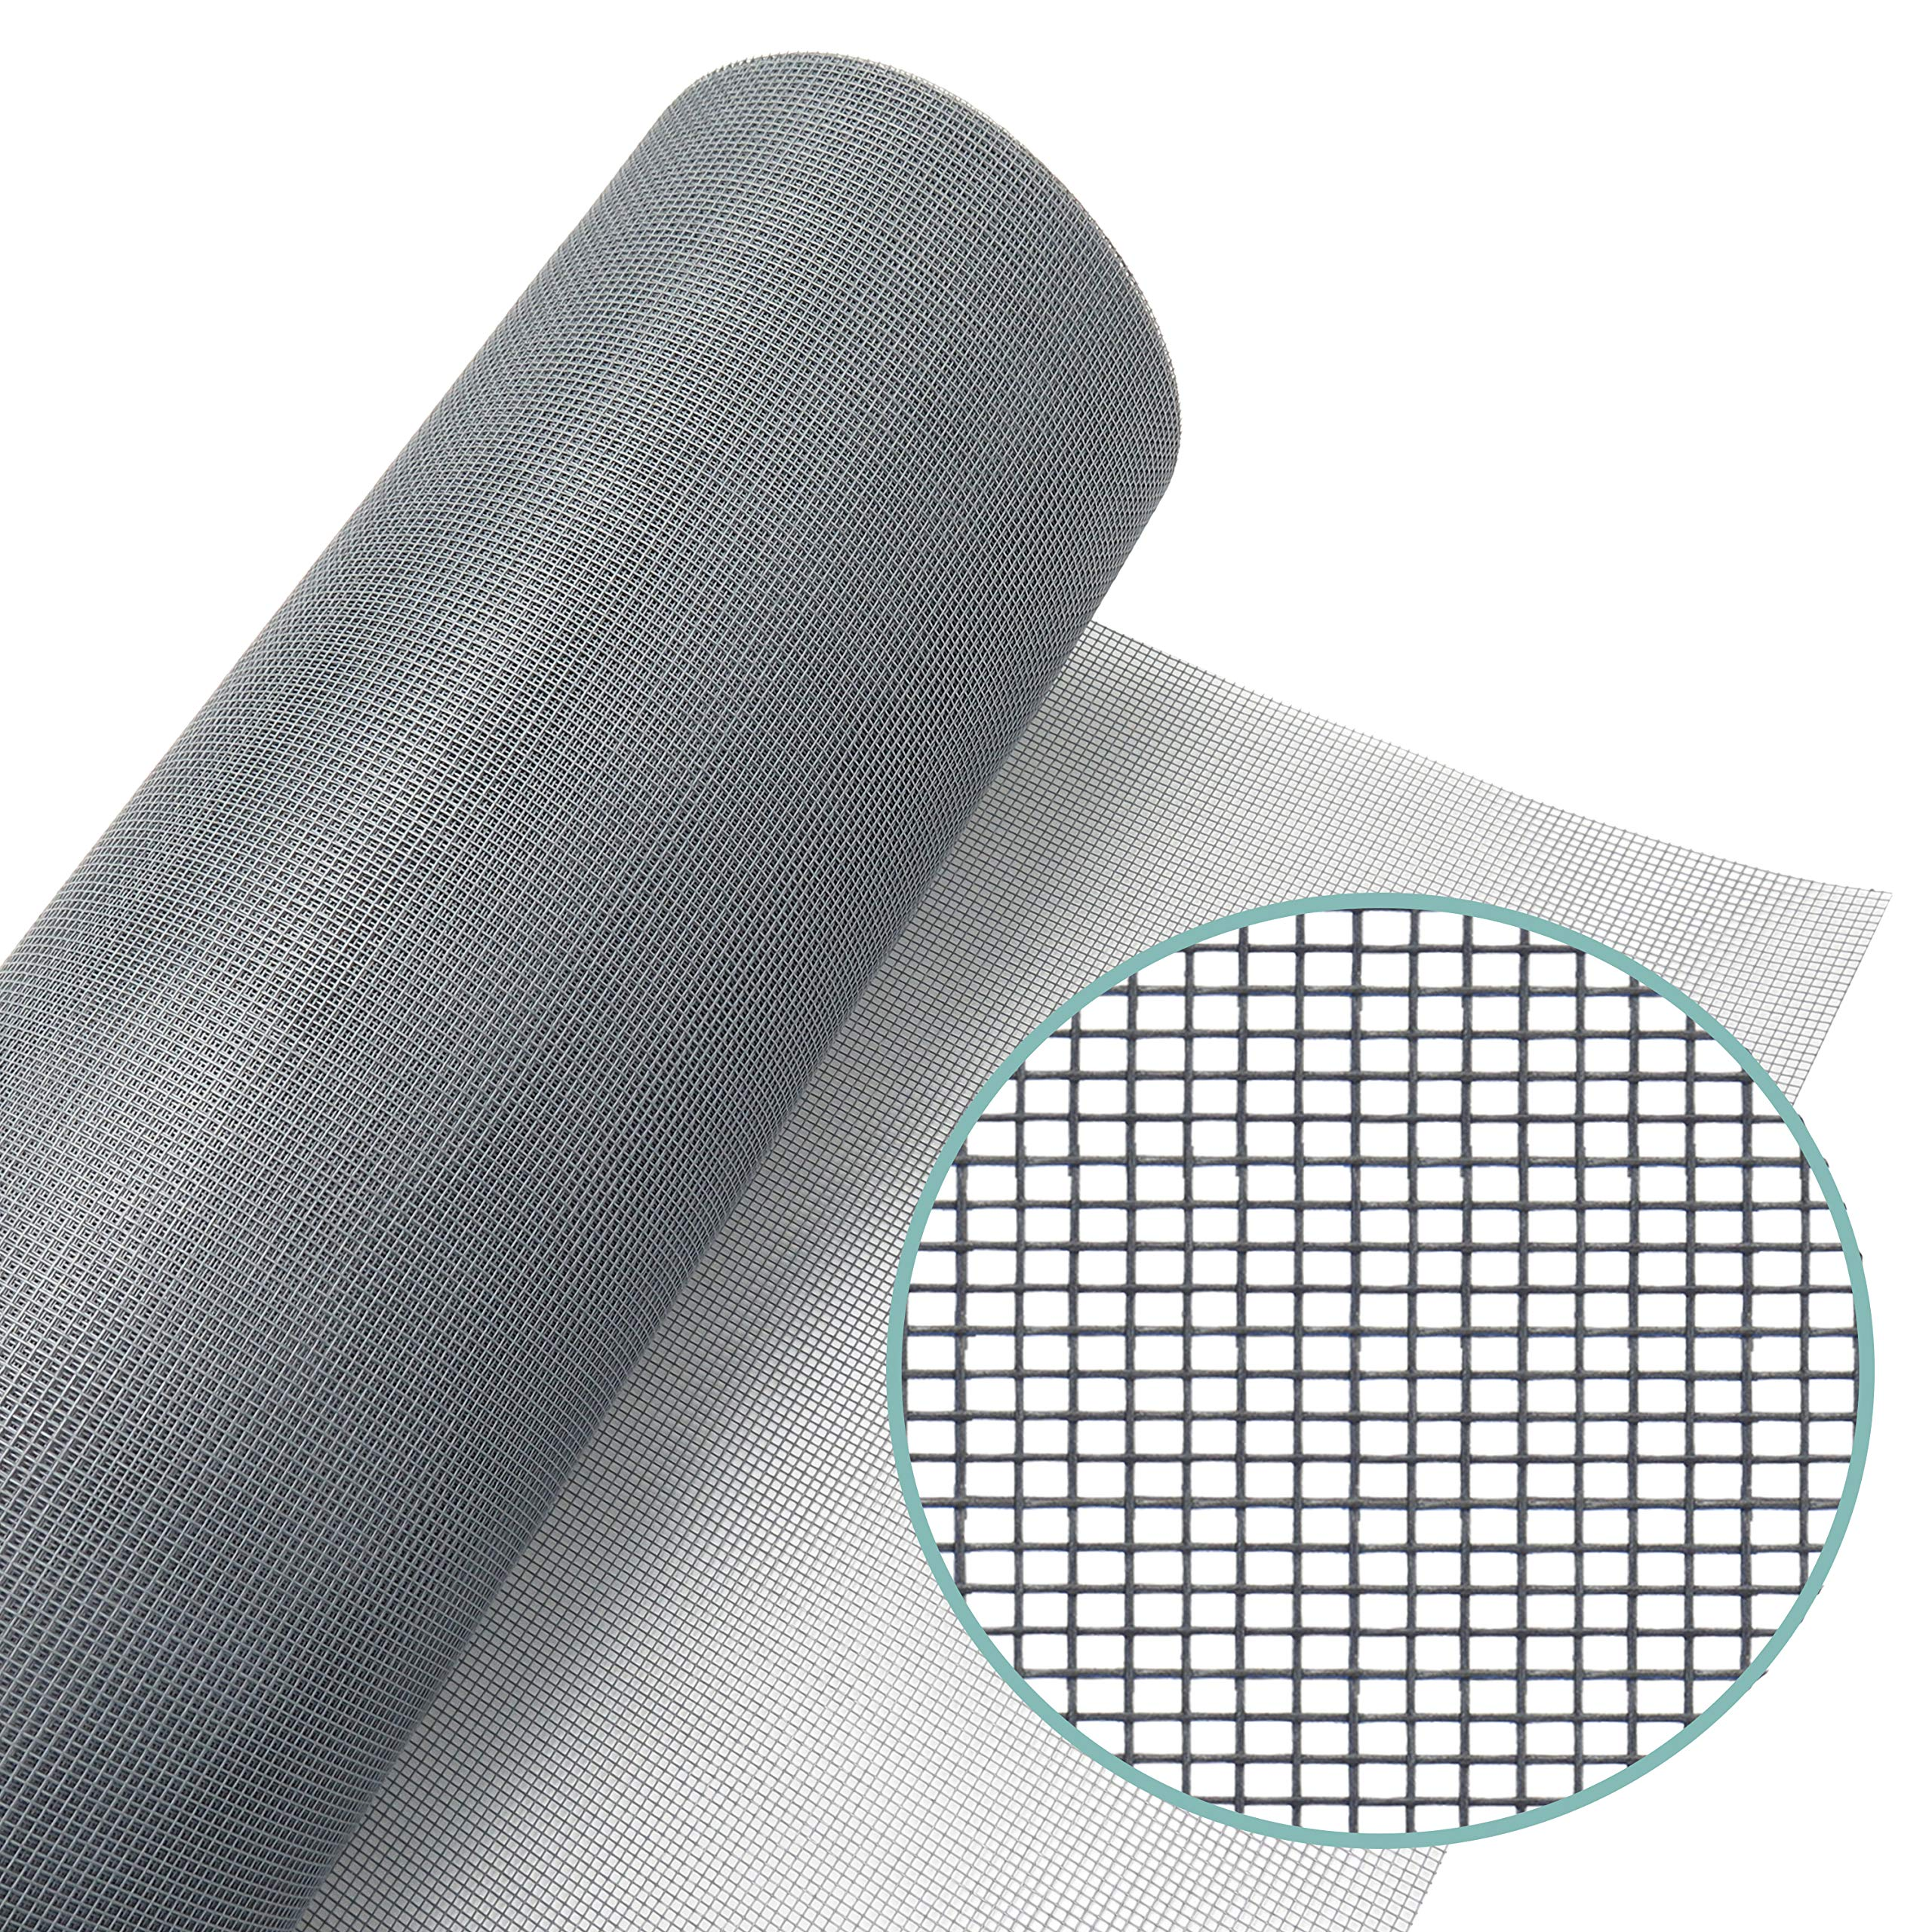 Lazy Dog Warehouse Window Screen Mesh Roll 48in x 100ft - Fiberglass Screen Replacement Mesh for DIY Projects (Grey Mesh) by LAZY DOG WAREHOUSE